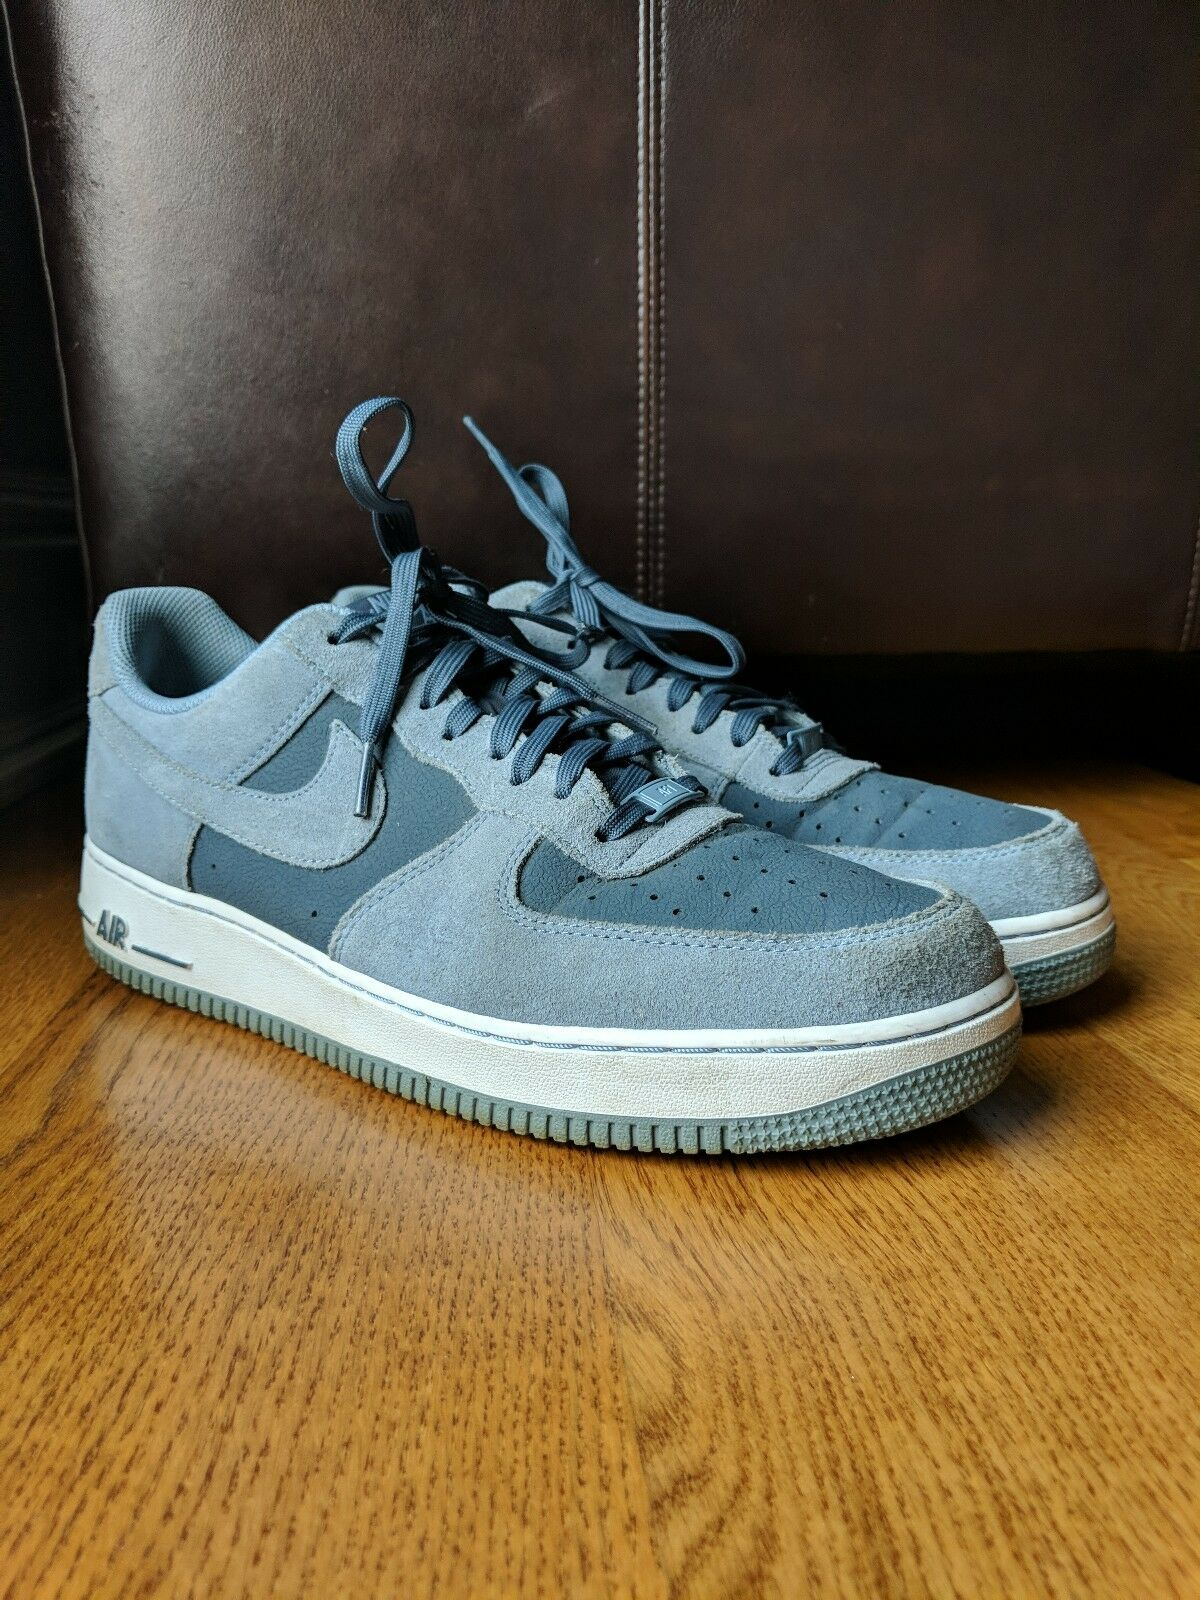 NIKE Mens Air Force One 1 Low 07 Dark Magnet Grey White shoes Sneaker SIZE 11.5